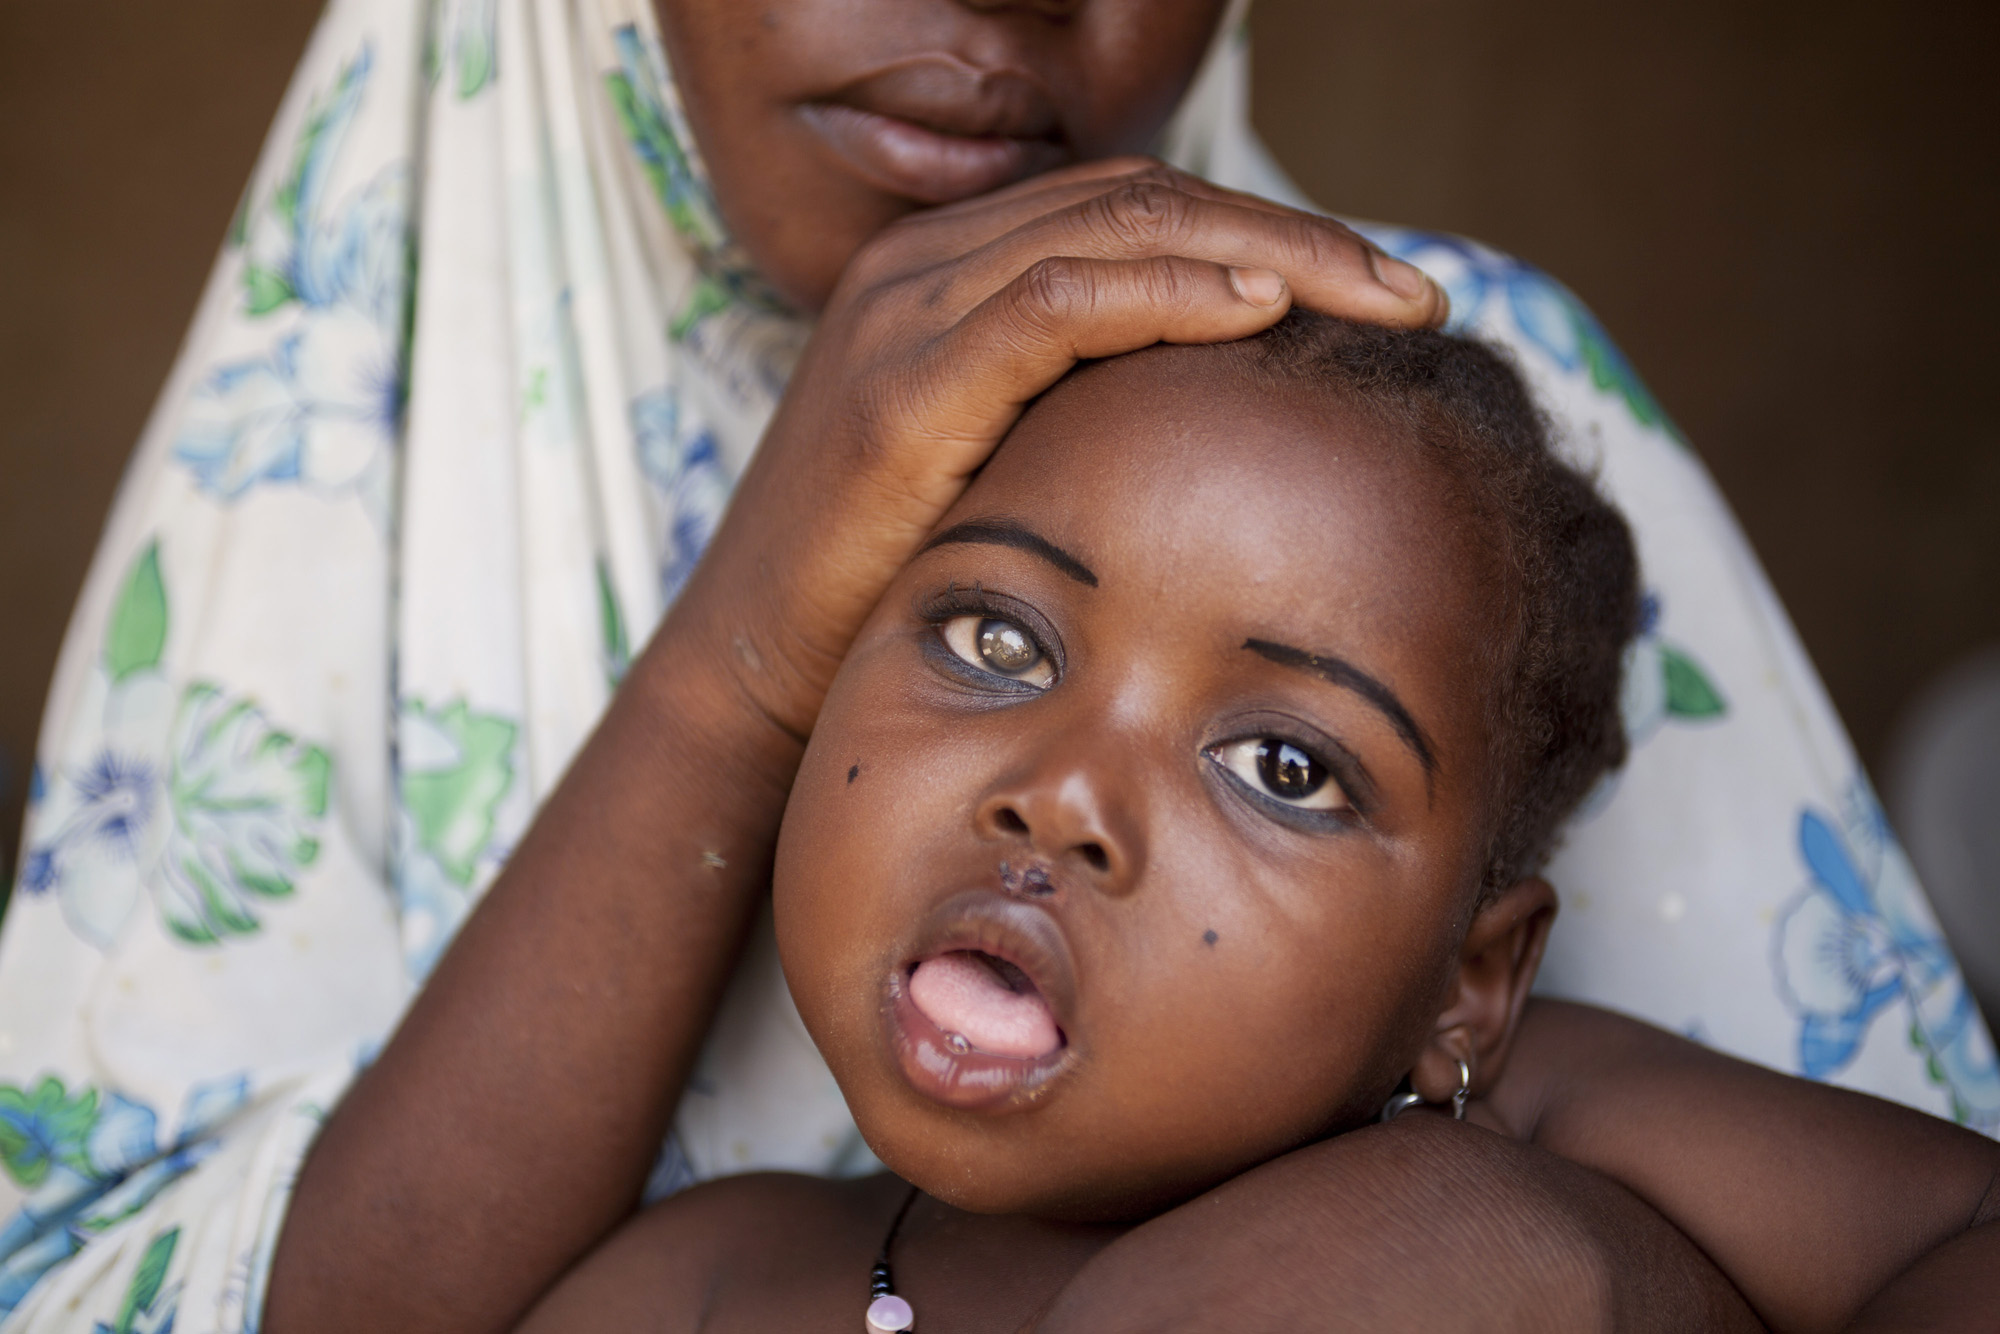 A little girl in Zamfara State is living with the long term effects of lead poisoning including blindness and convulsions. Thousands of children in Zamfara have been lead-poisoned as a result of unsafe artisanal mining practices over the past two years